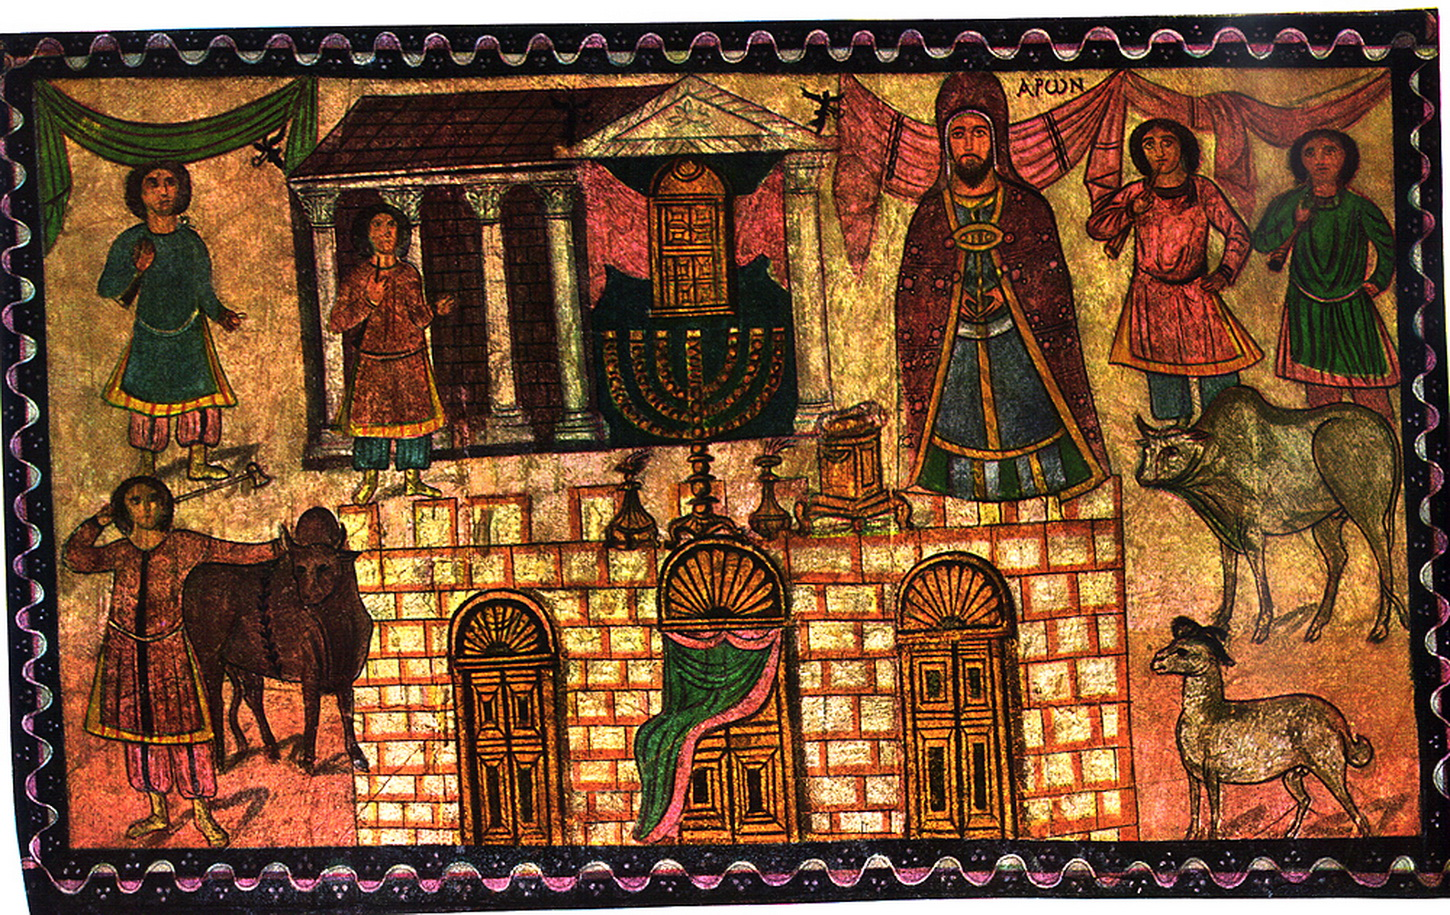 The Consecration of the Tabernacle painted panel from west wall of synagogue Dura